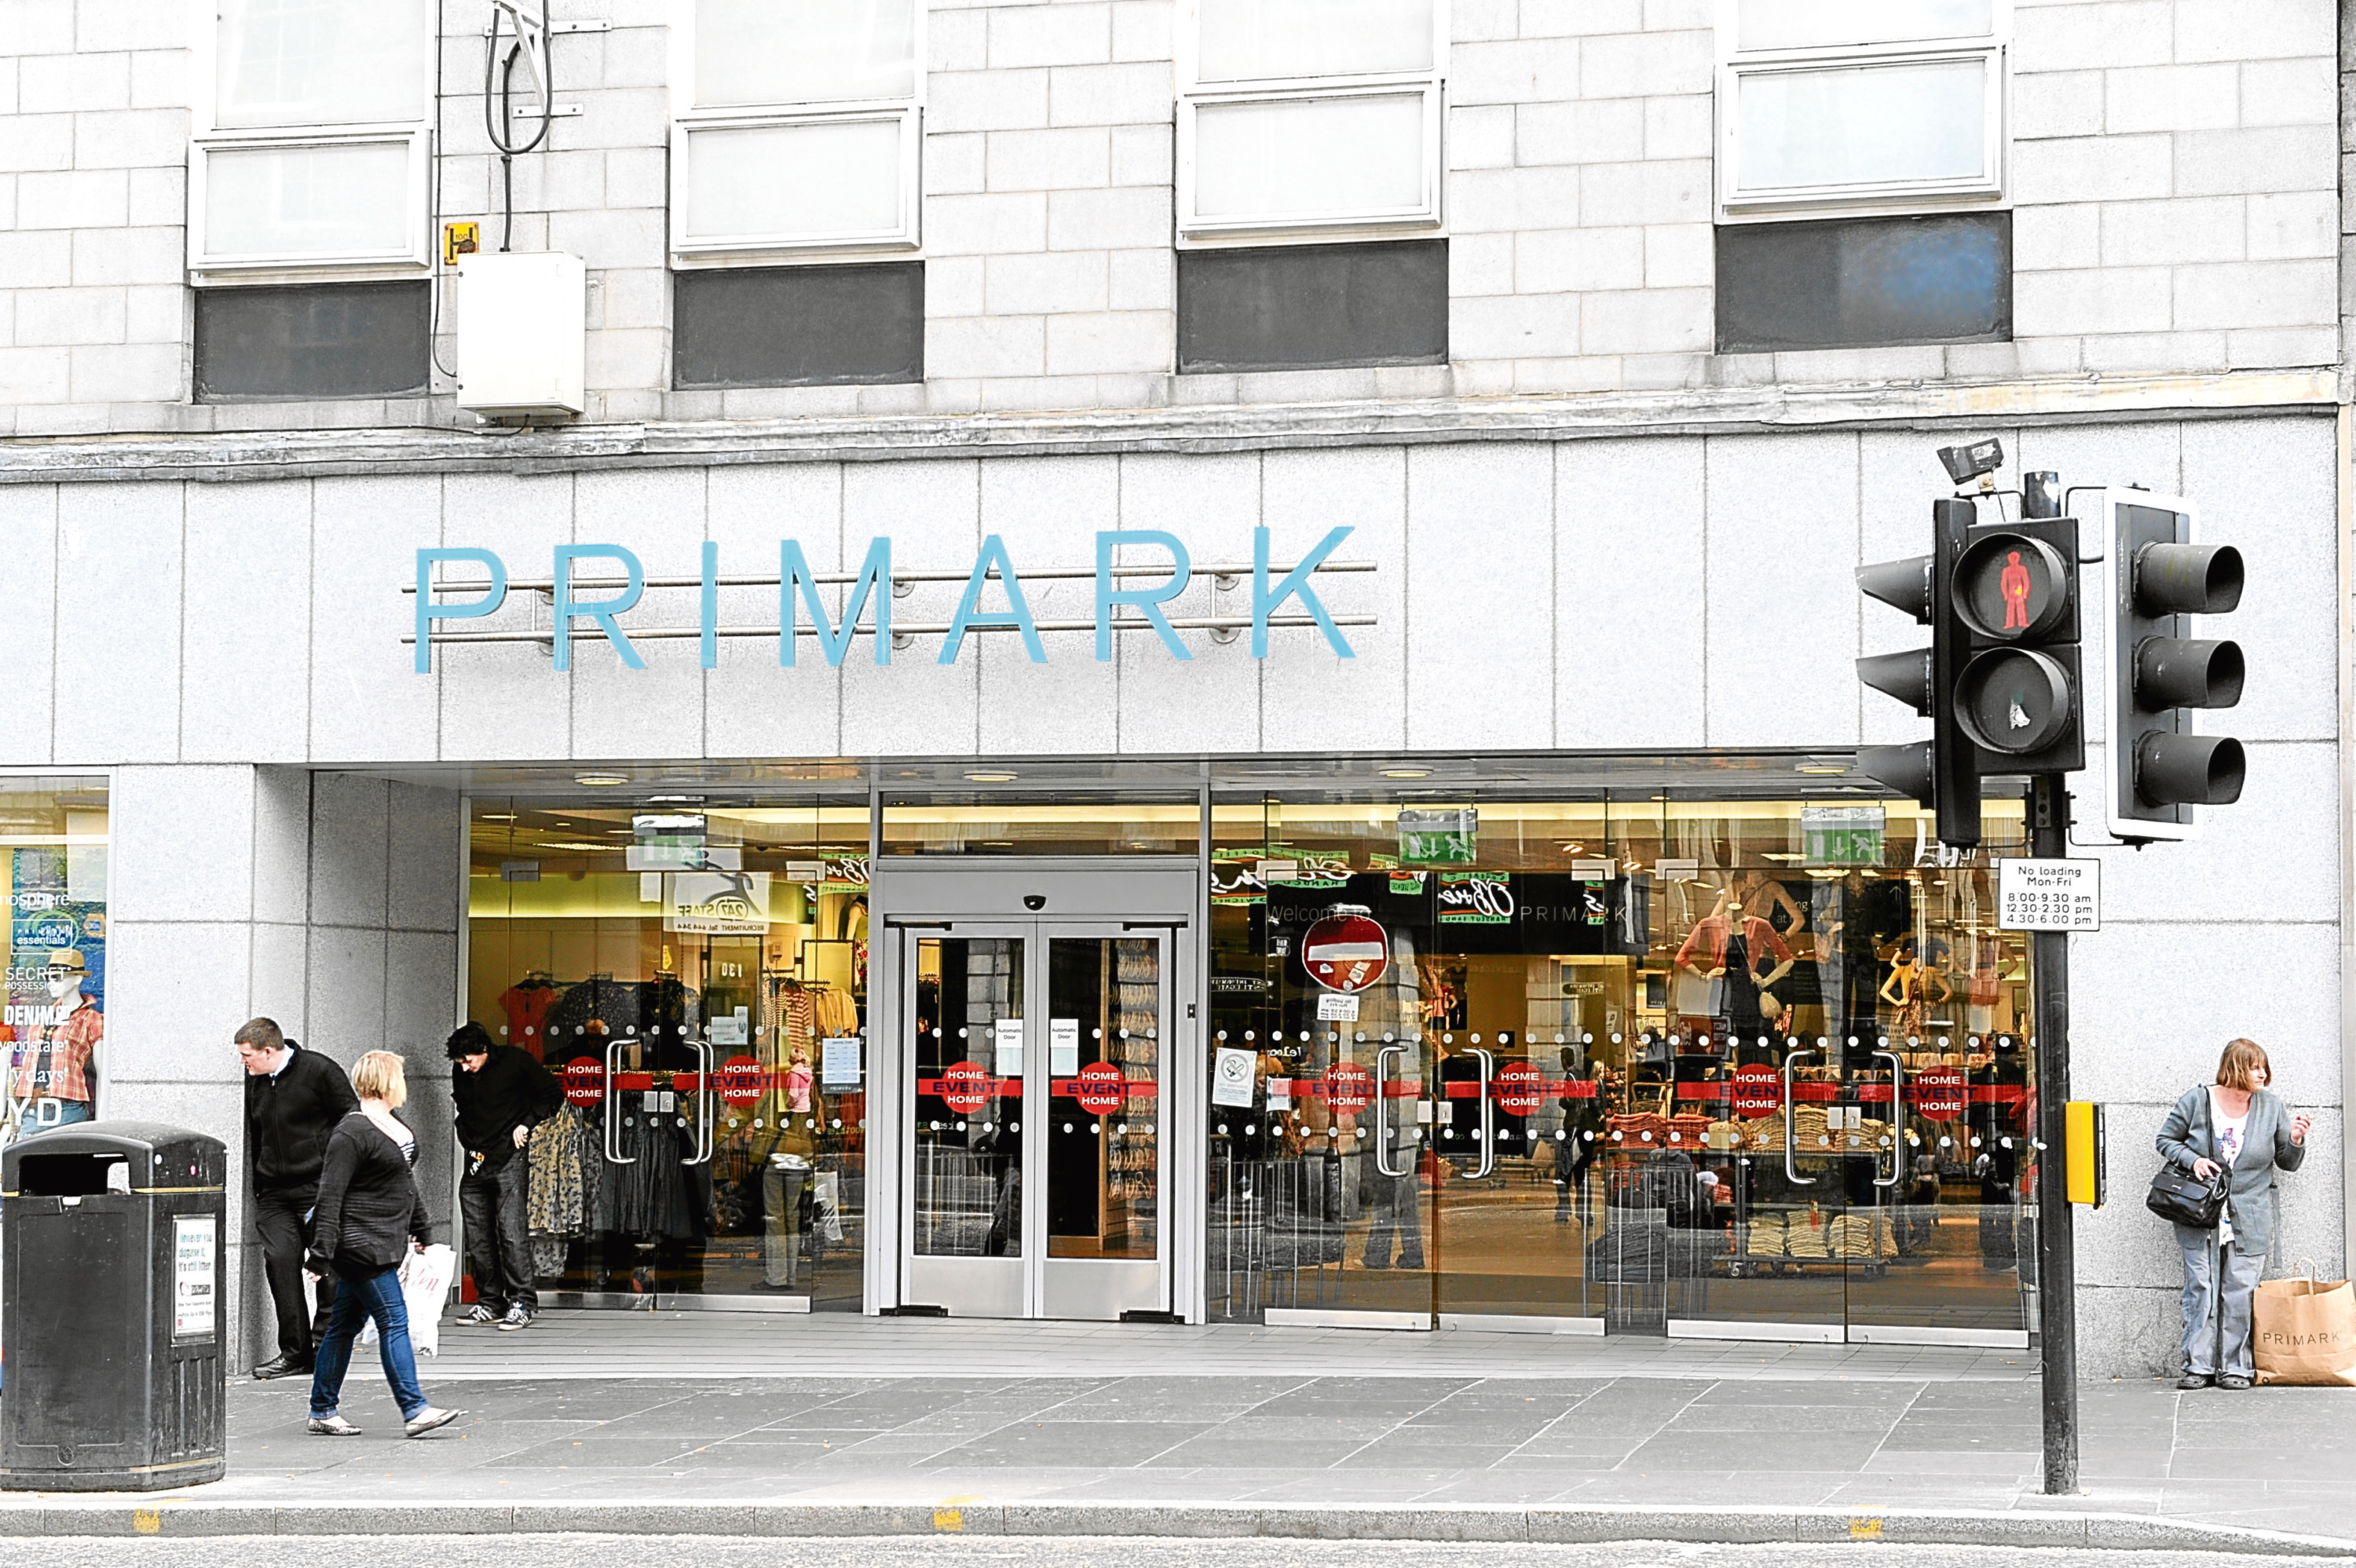 The Primark store on Union street